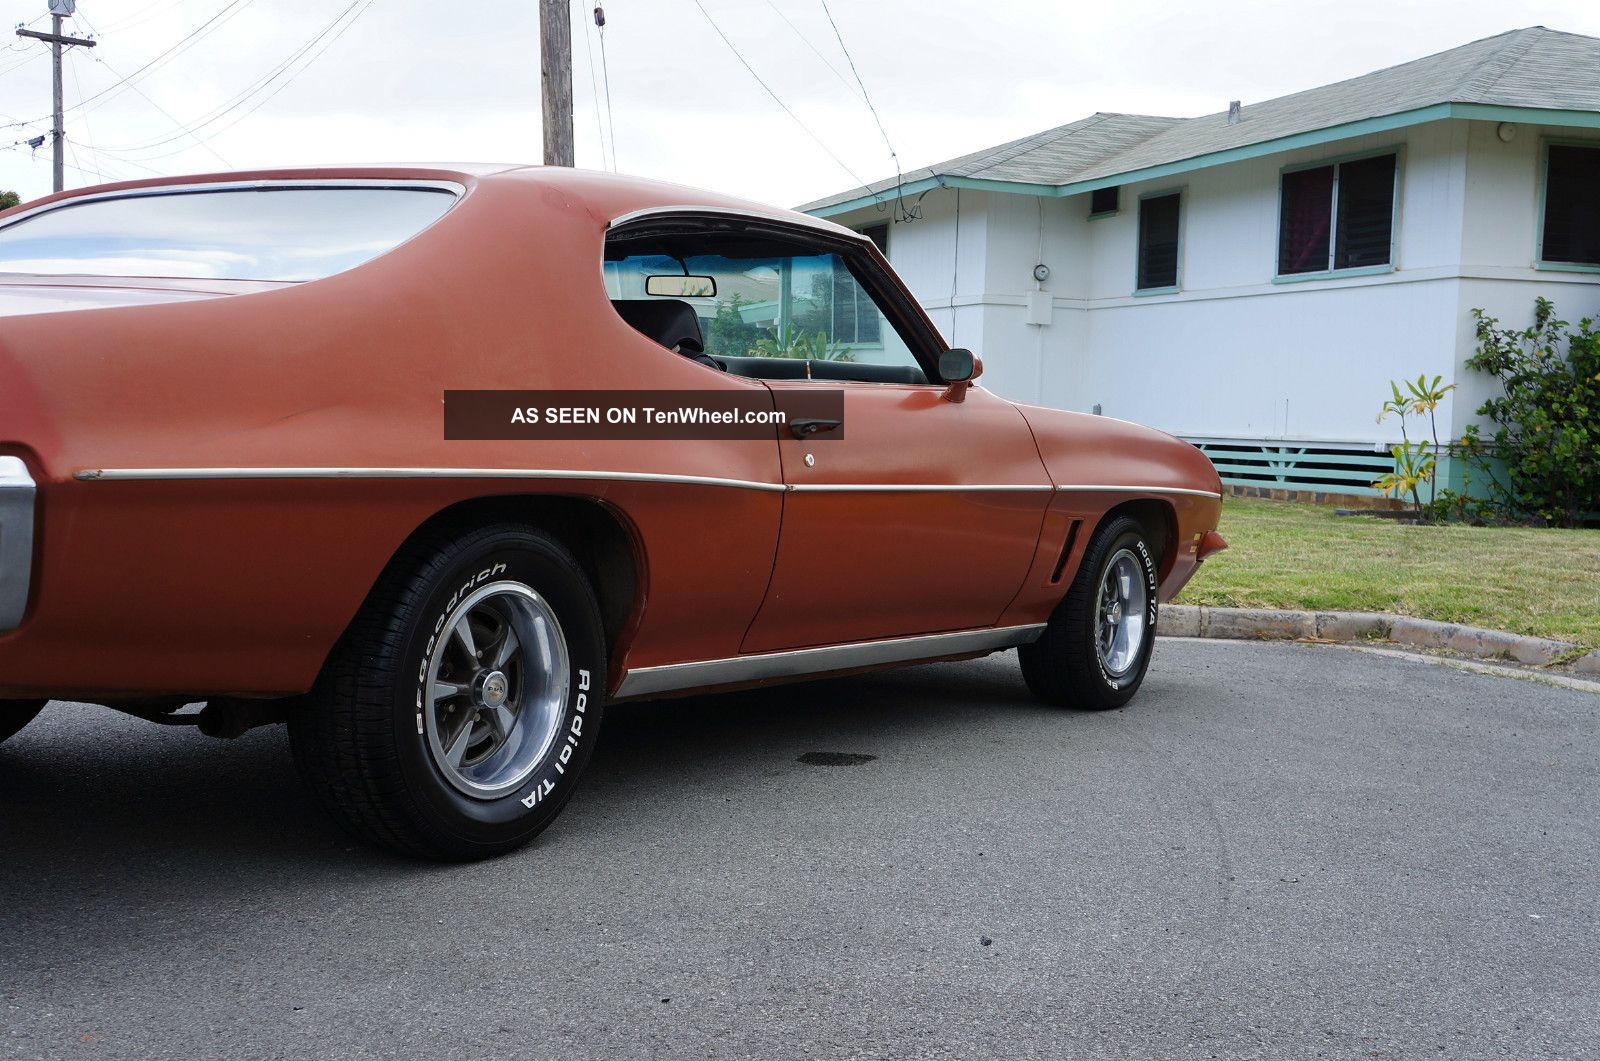 pontian cougars personals Find 1964 pontiac lemans for sale on oodle classifieds join millions of people using oodle to find unique used cars for sale, certified pre-owned car listings, and new car classifieds.